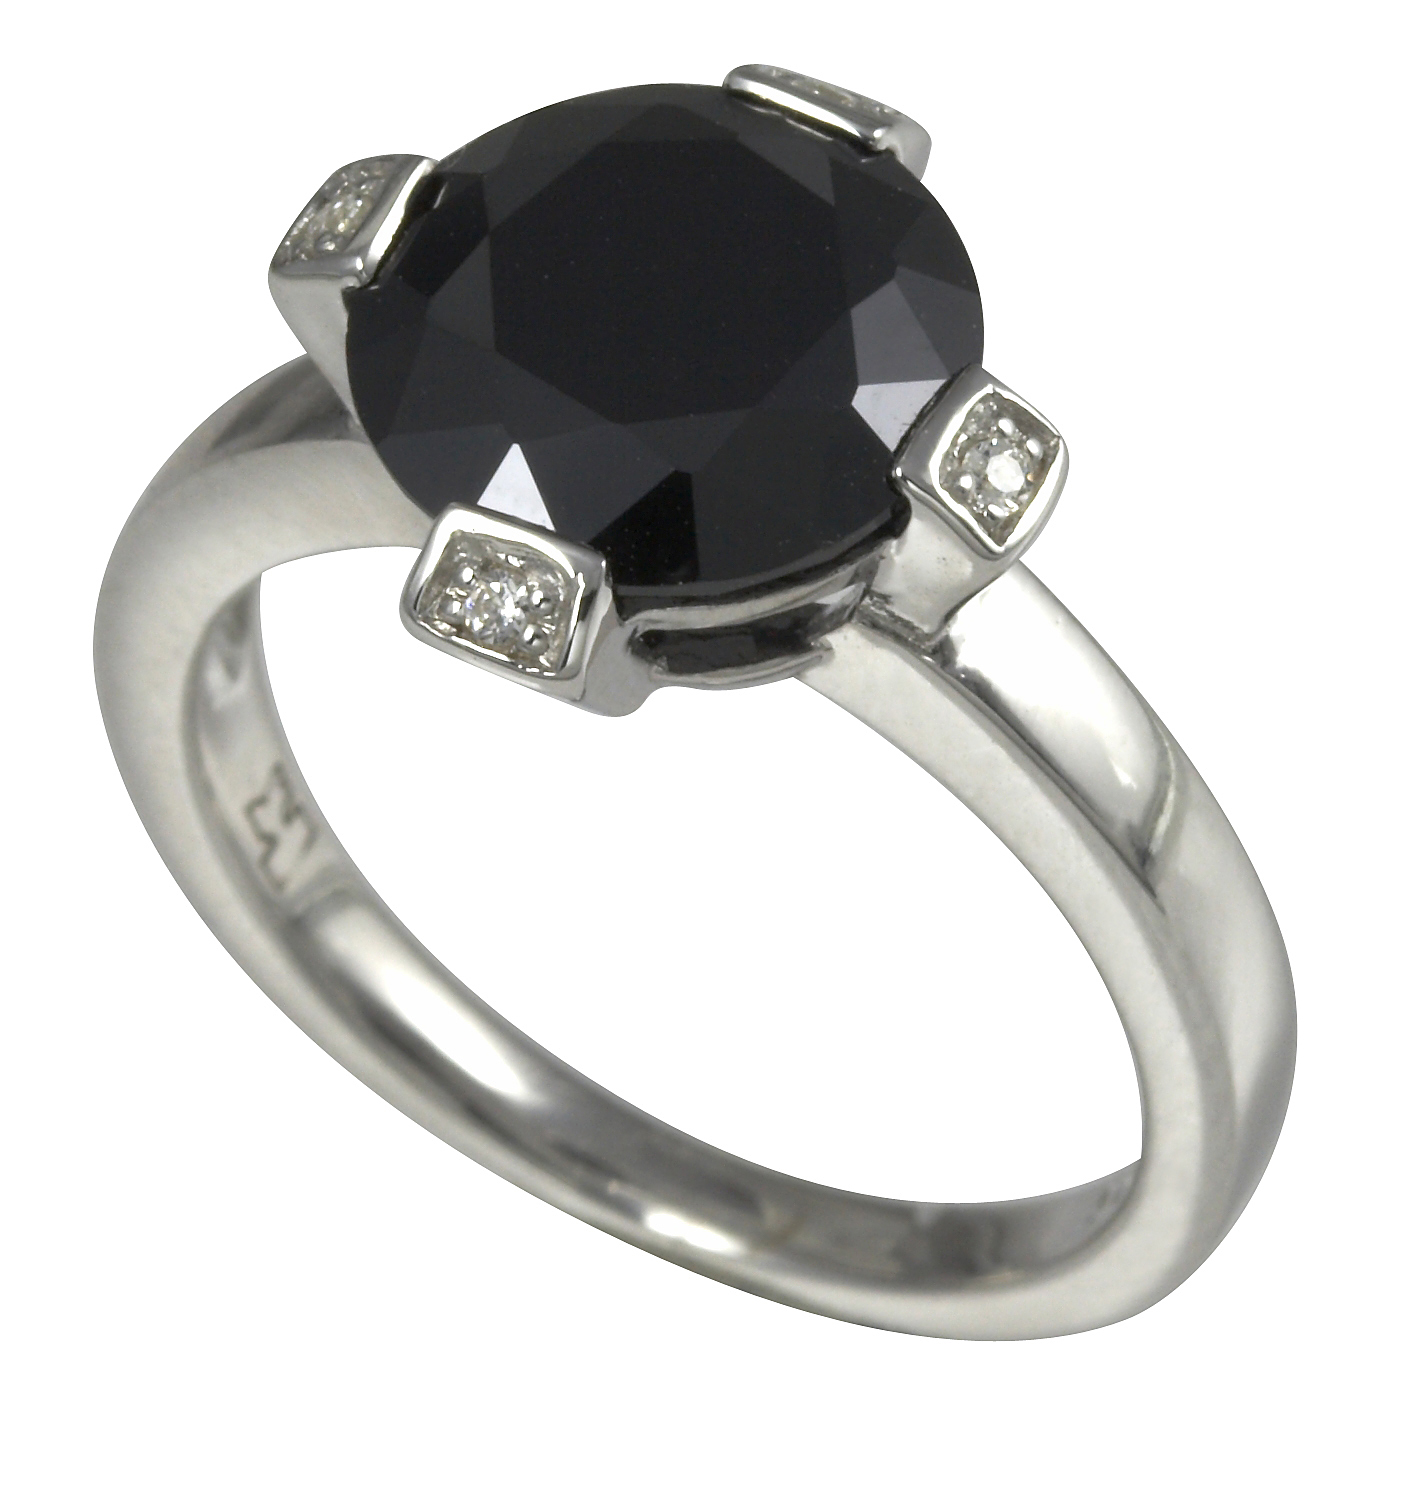 Merii Sterling Silver Black & White Cubic Zirconia Ring Size: O